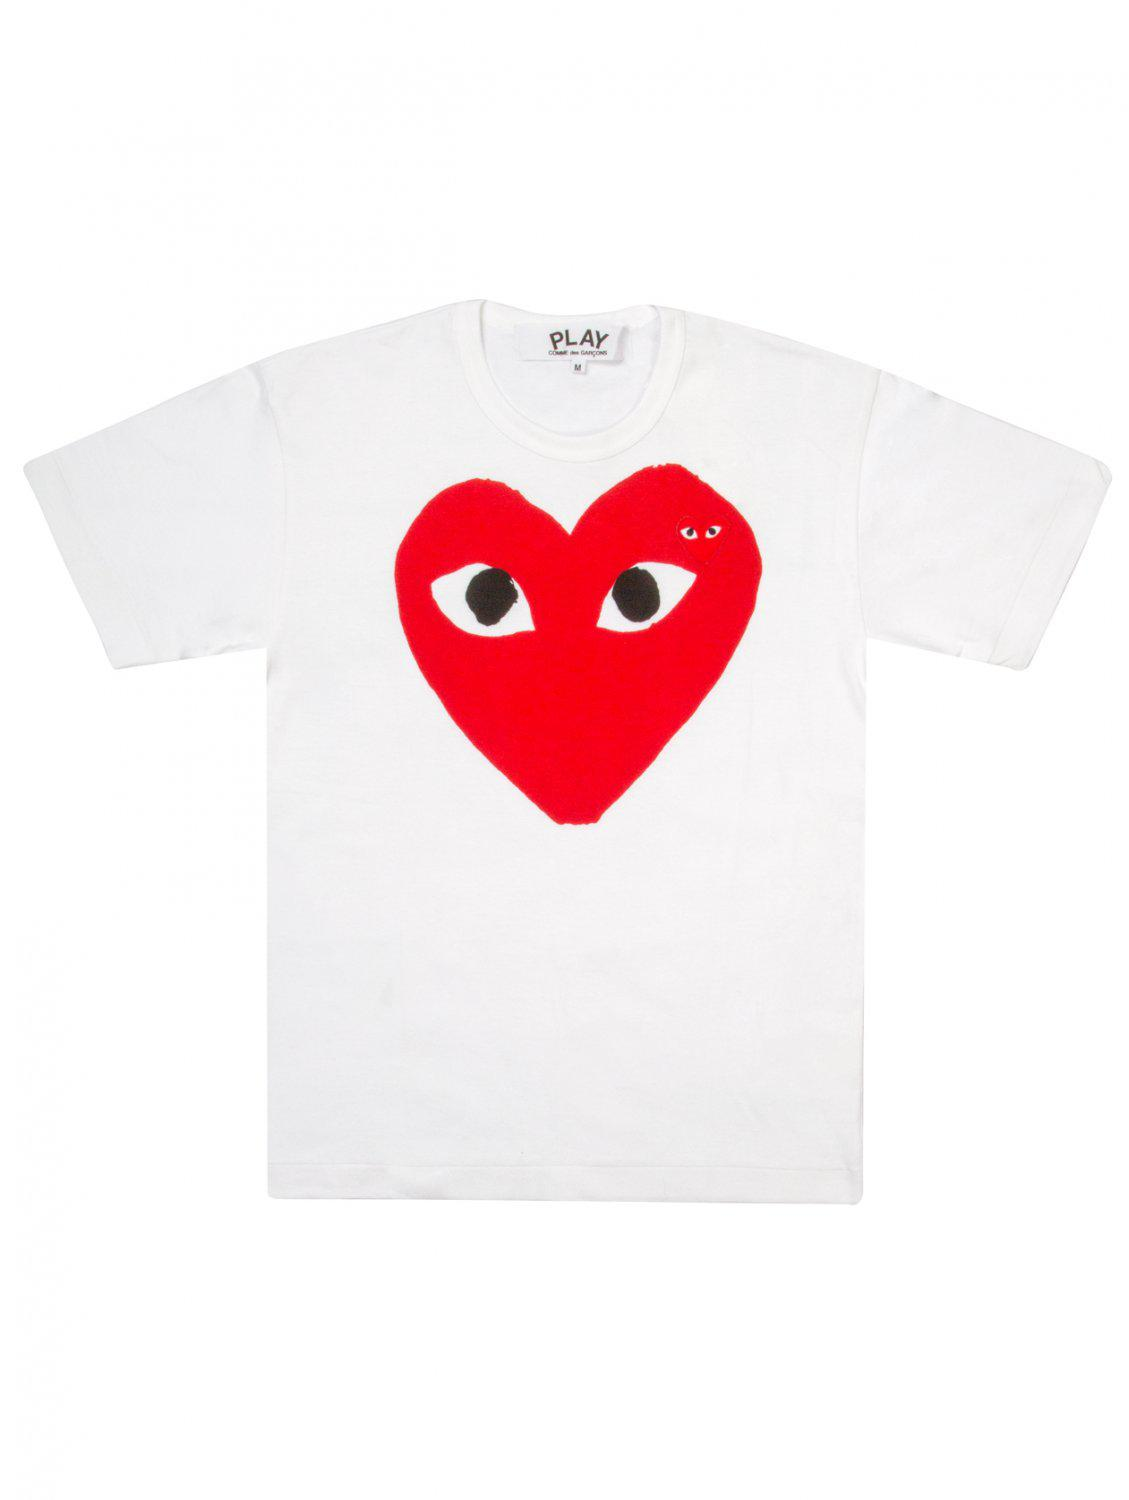 6484a0163010 Comme Des Garçons Play Womens Red Heart Logo T-shirt White in Red - Lyst